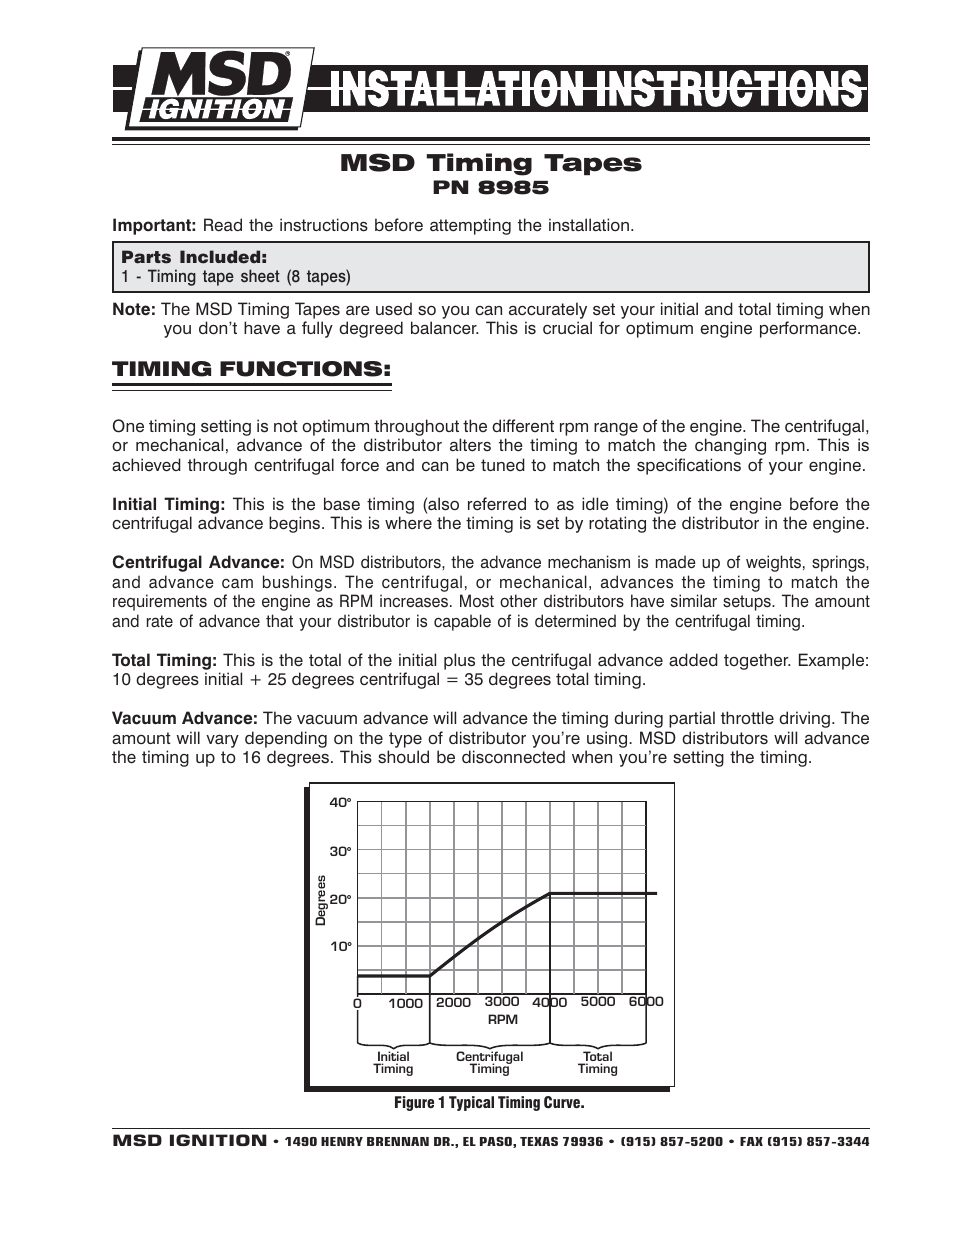 MSD 8985 Timing Tapes for Harmonic Balancers Installation